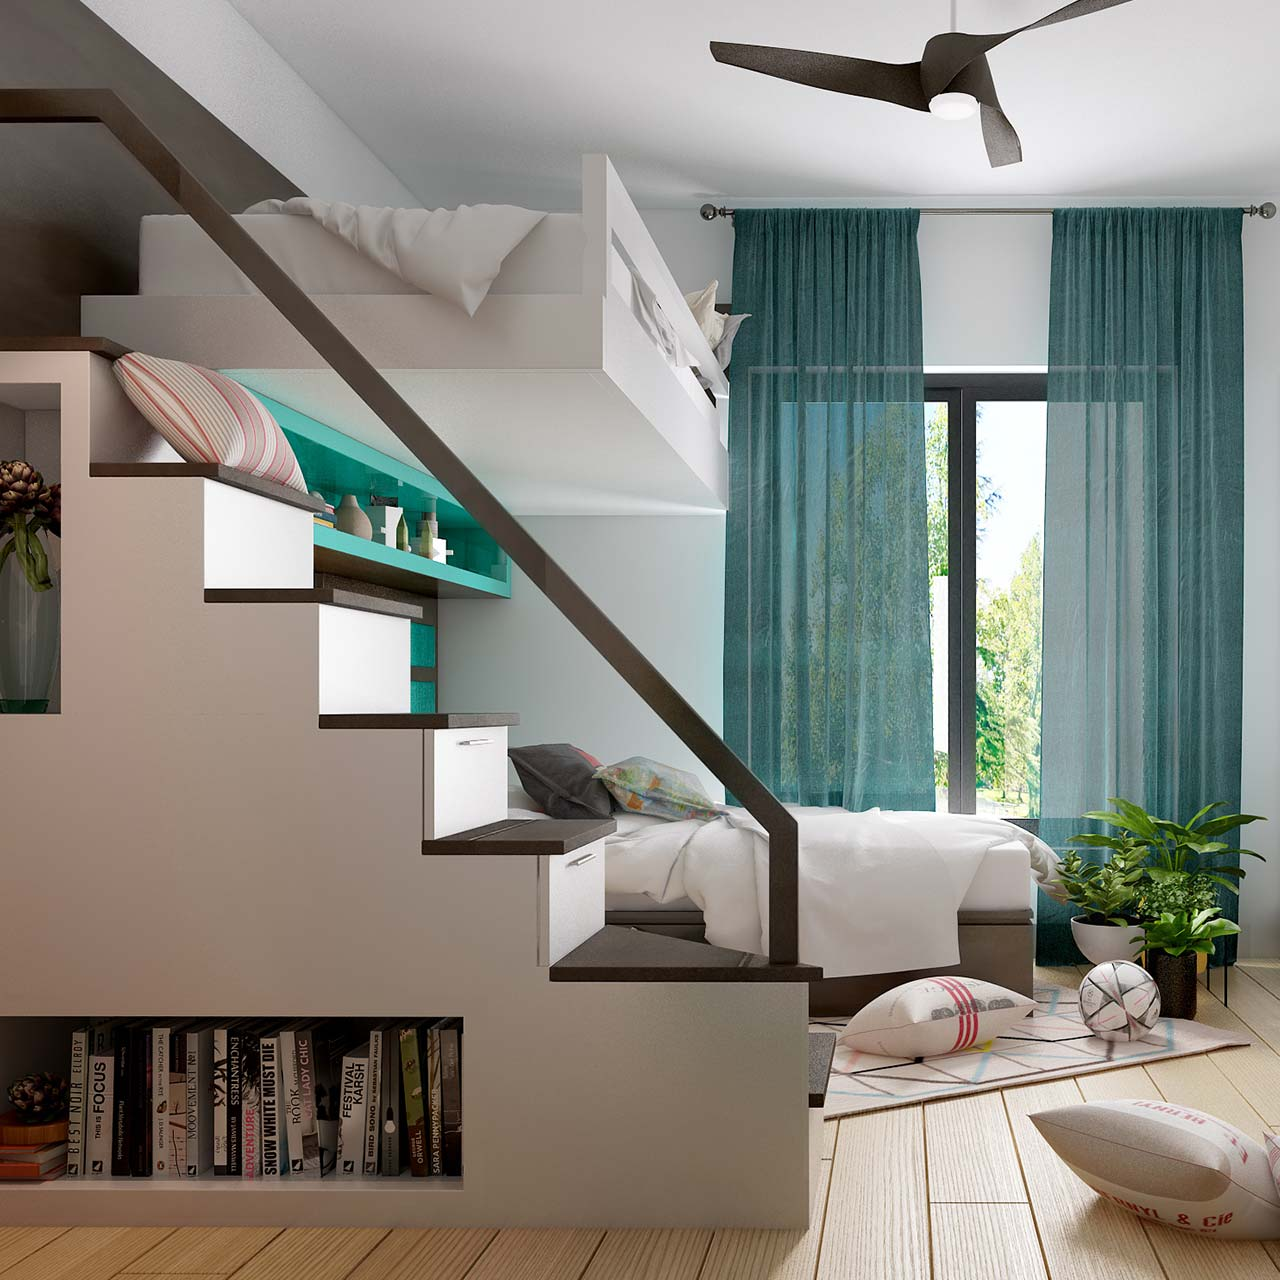 Small bedroom interior design with loft bed is a brilliant space-saving solution